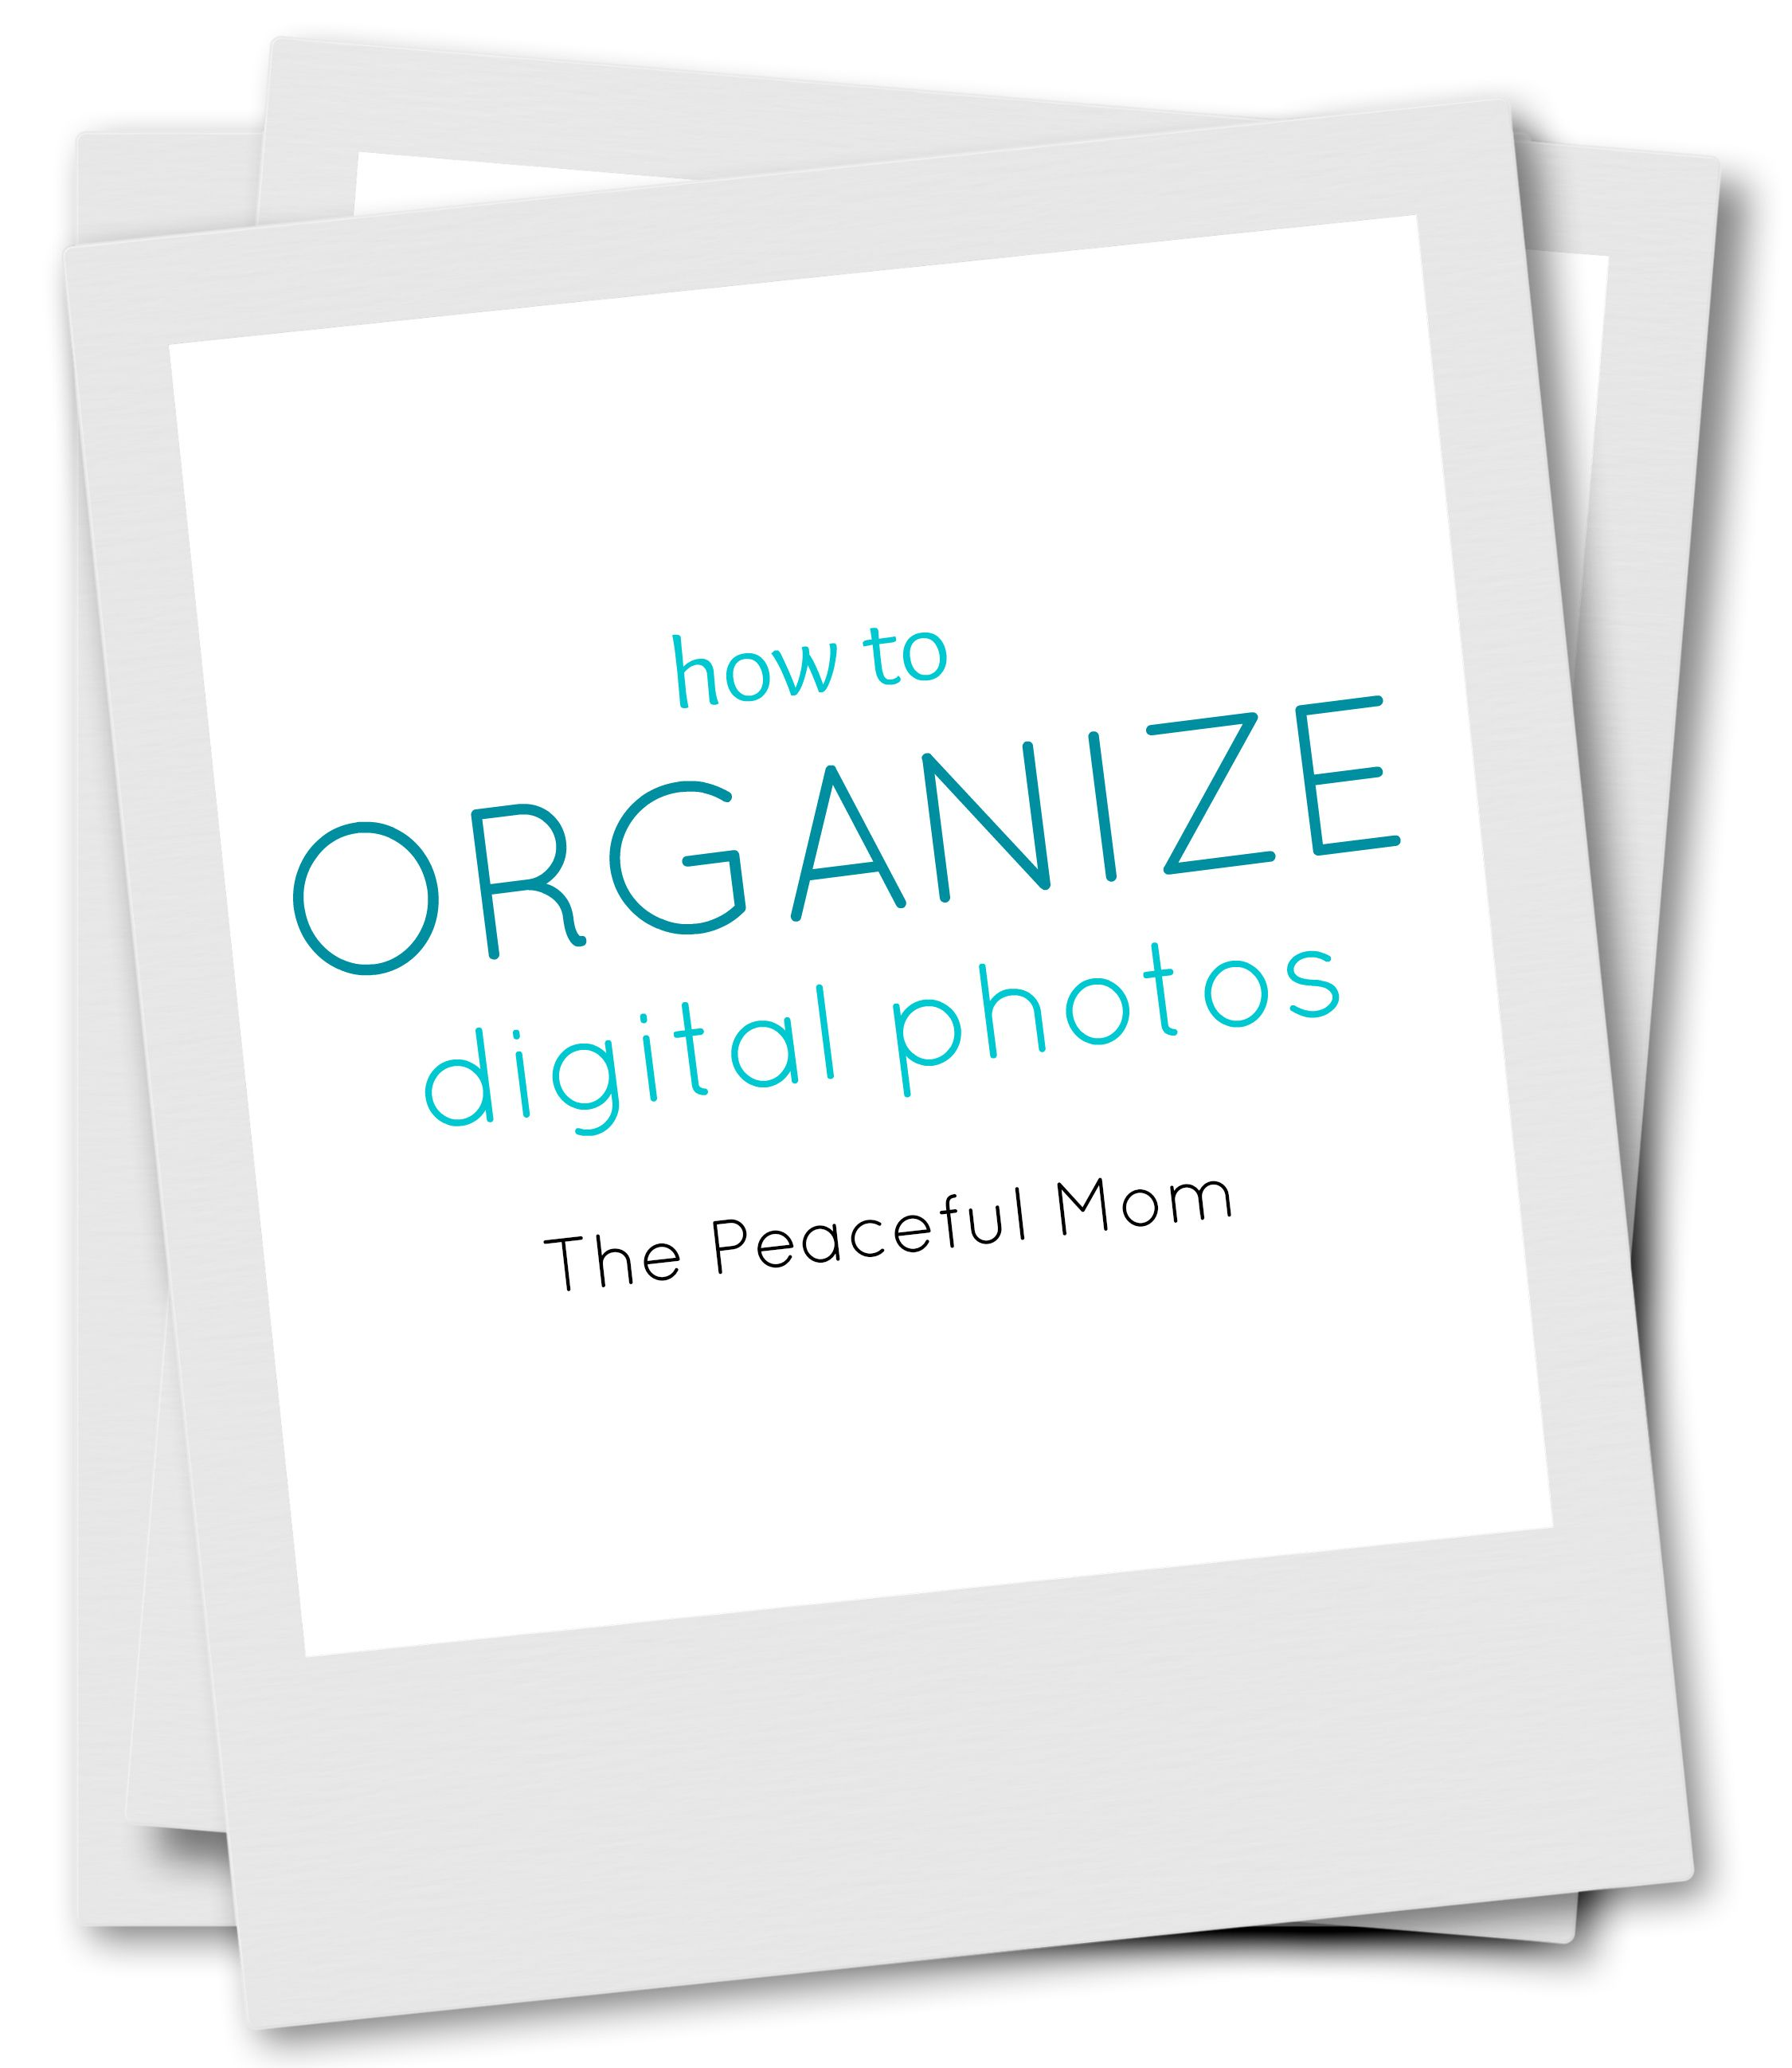 Impeccable Organisations How To Organize Digital Photos On Pc How To Organize Your Digital Photos How To Organize Digital Photos How To Organize Digital Photos Digital photos How To Organize Digital Photos